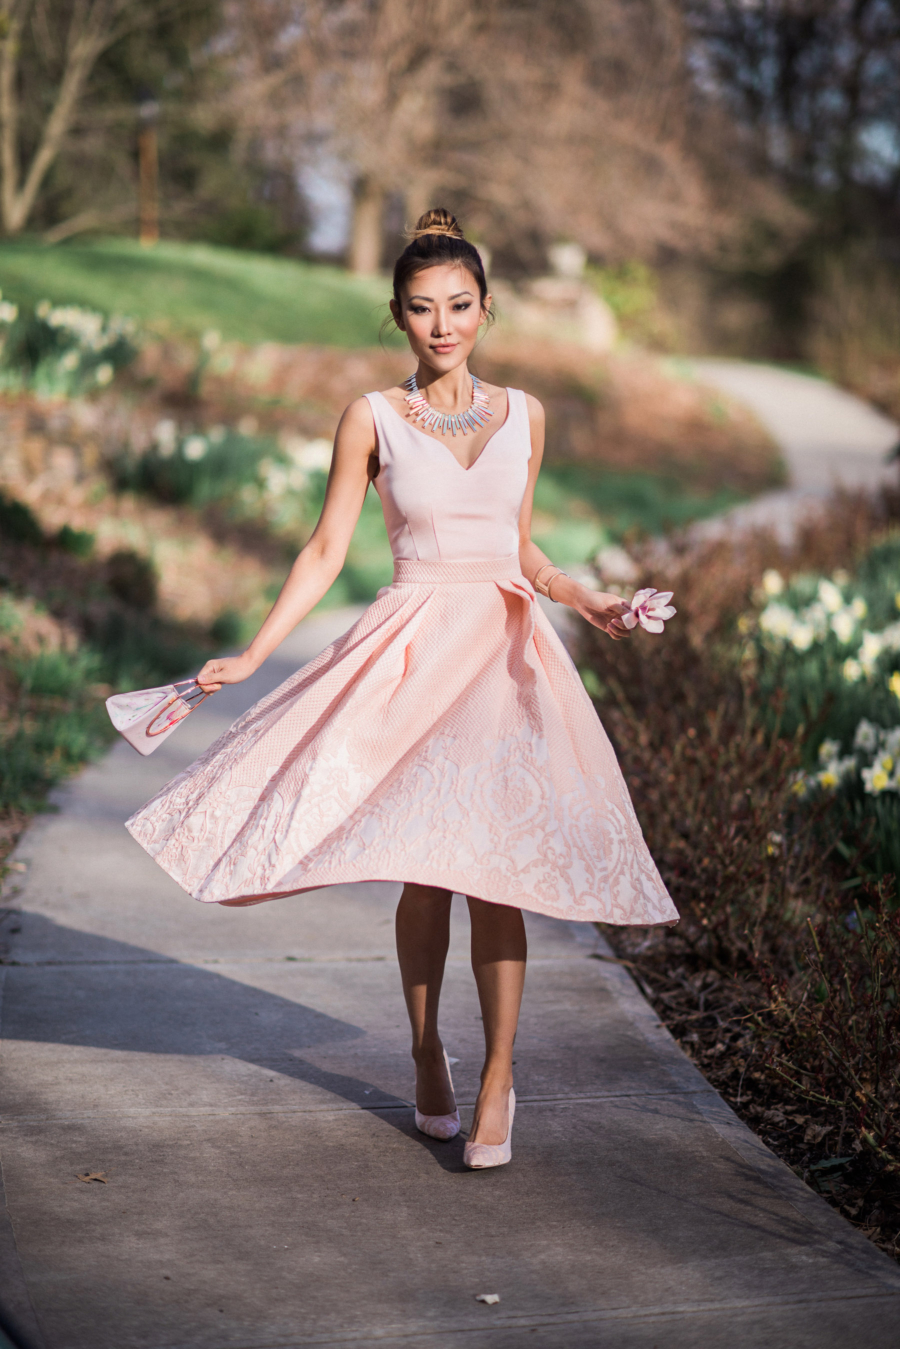 How to pick the perfect wedding dress, pink a-line dress // Notjessfashion.com